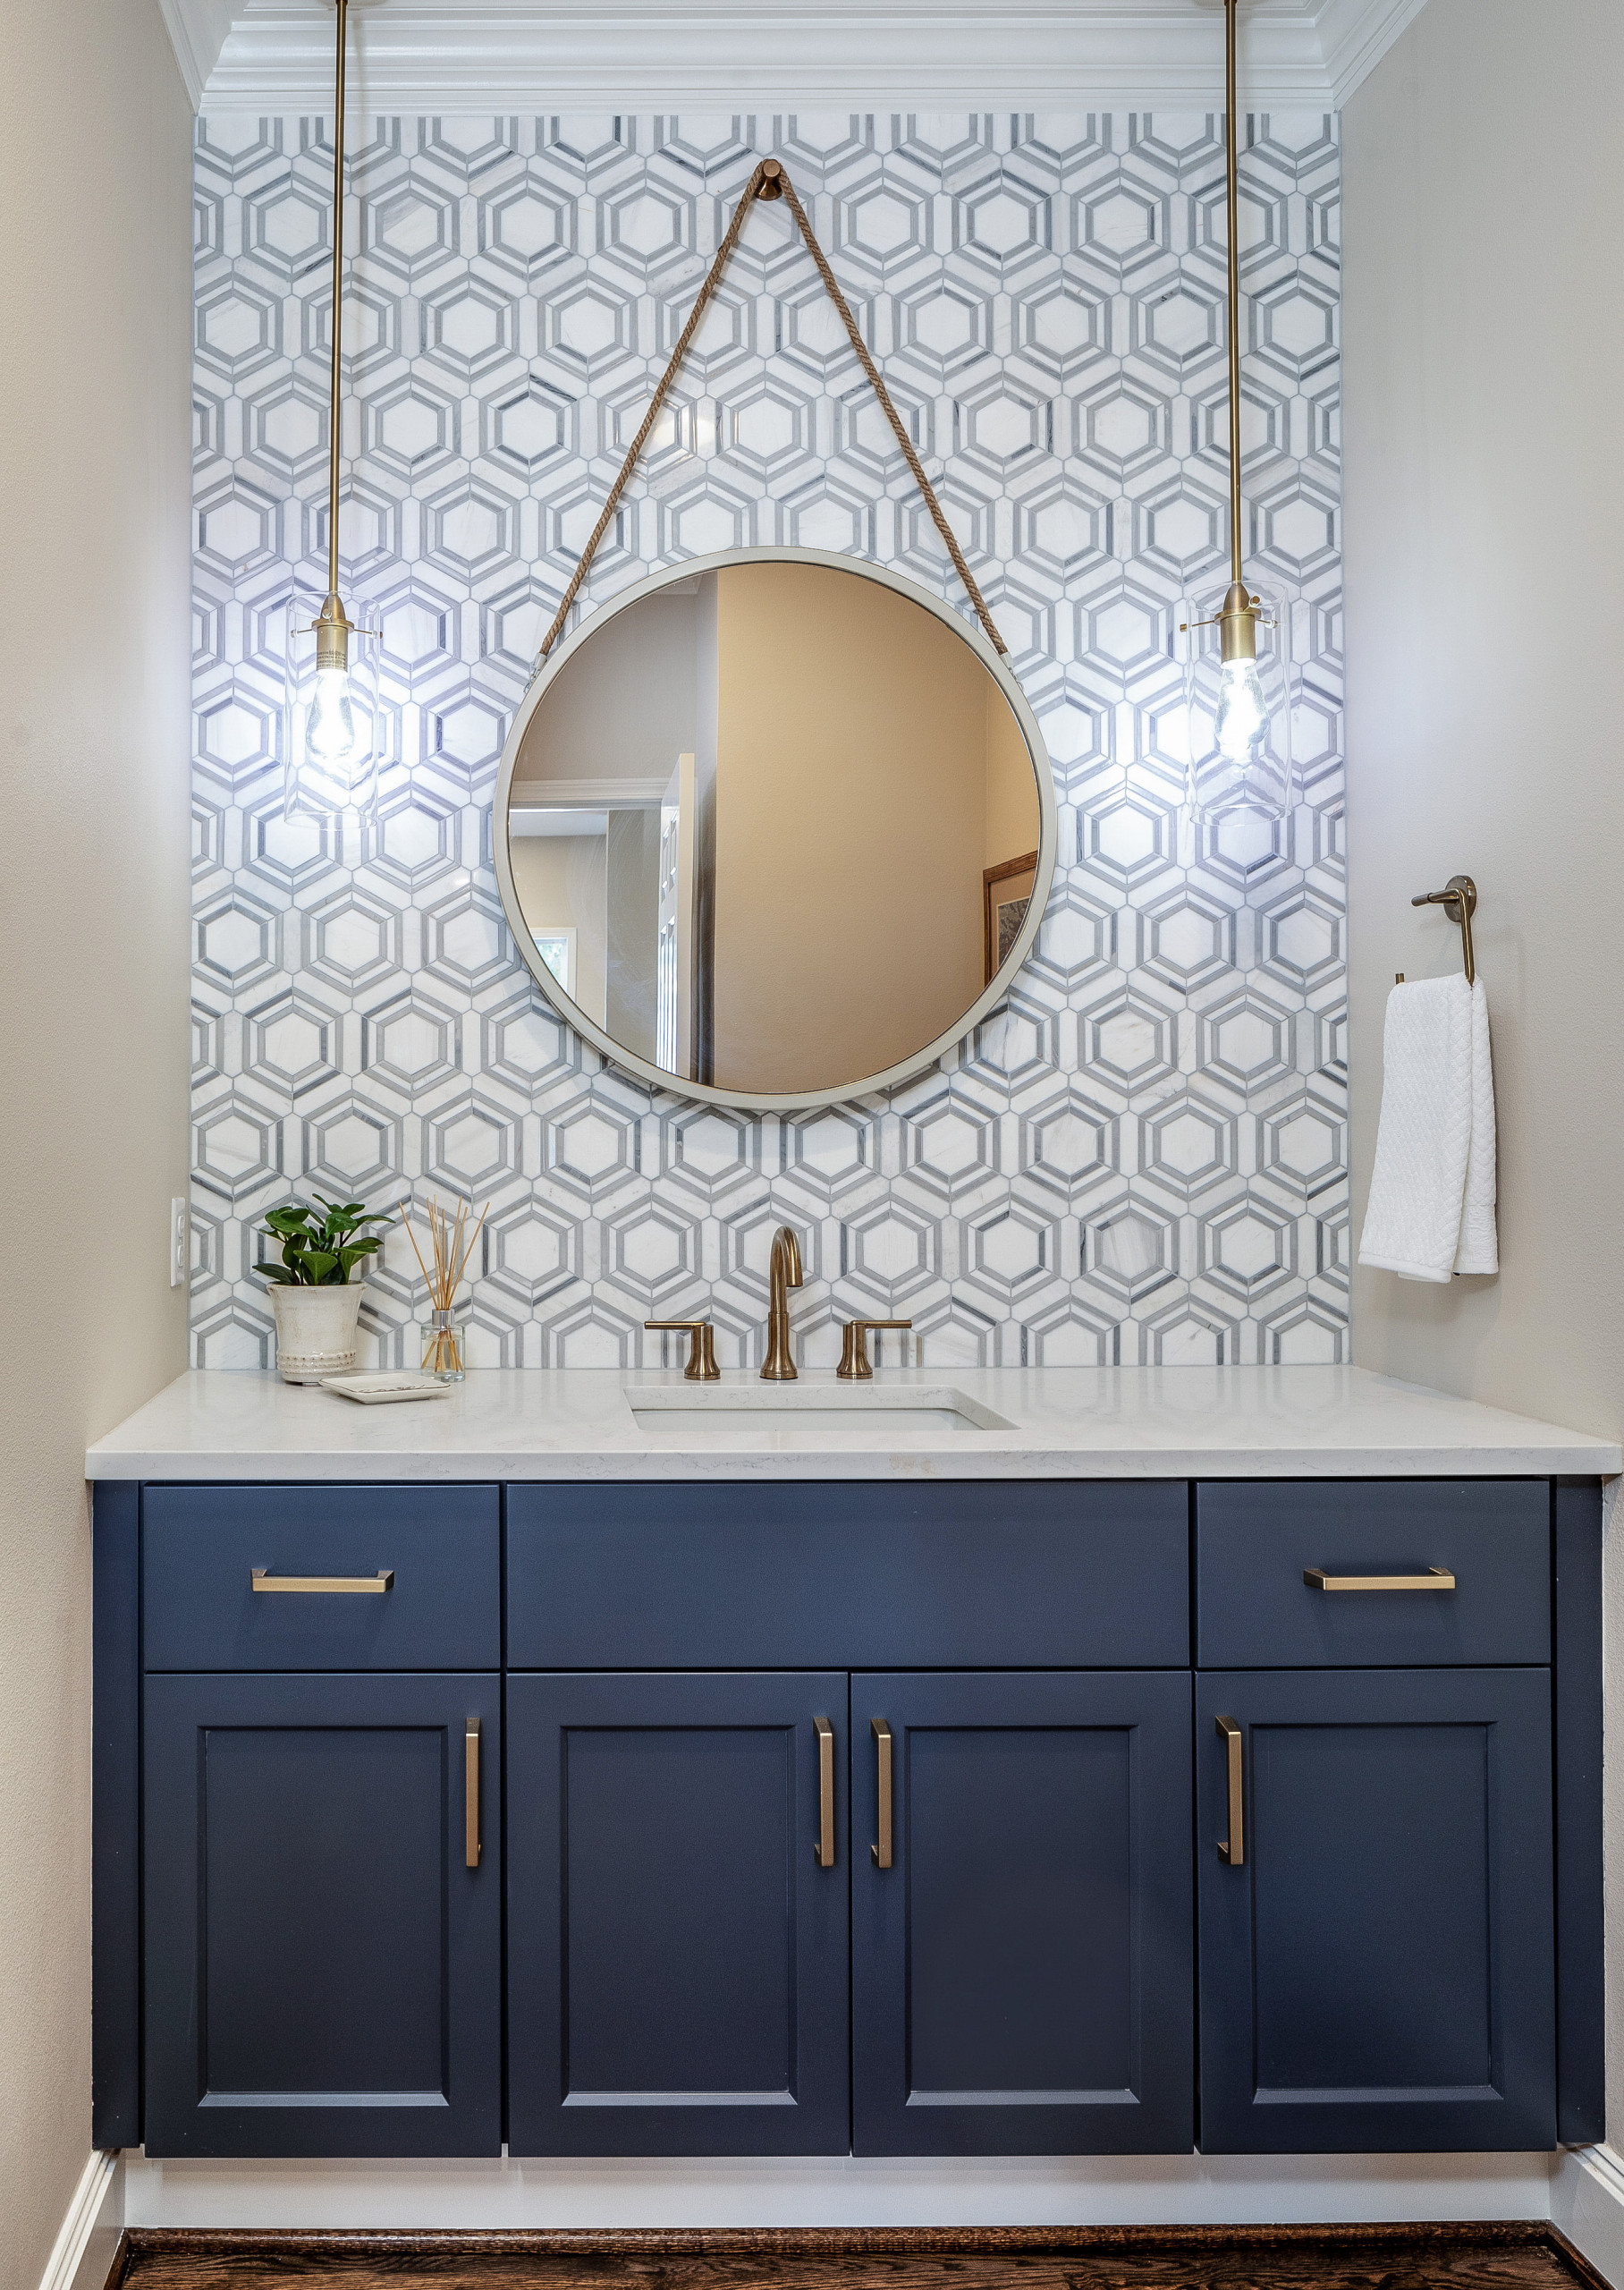 75 Beautiful Powder Room Pictures Ideas December 2020 Houzz